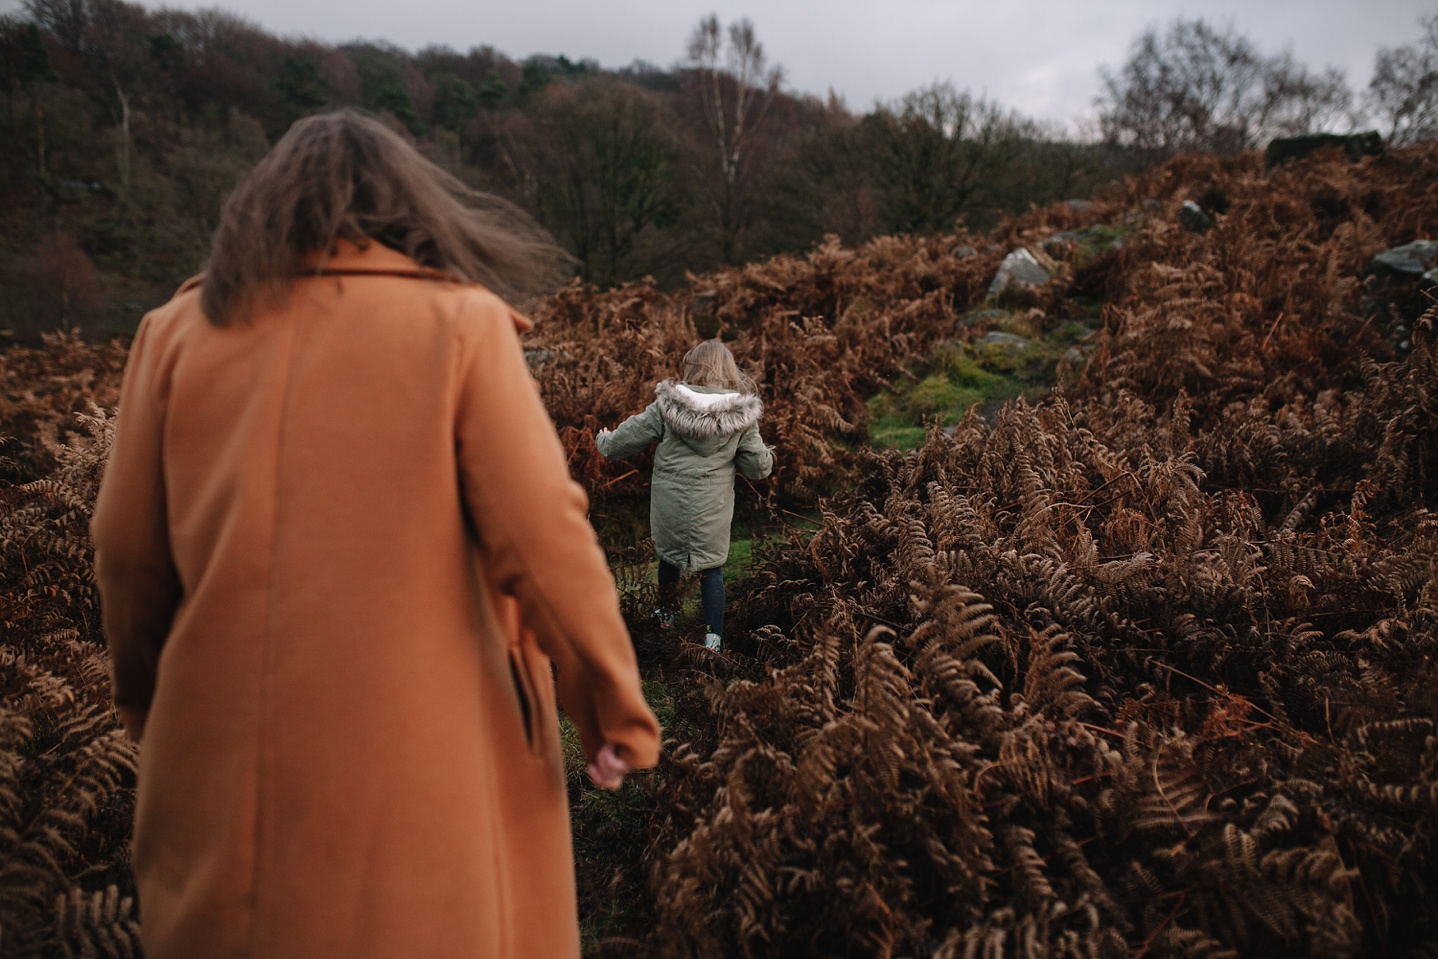 mum and little girl walking through the brown ferns